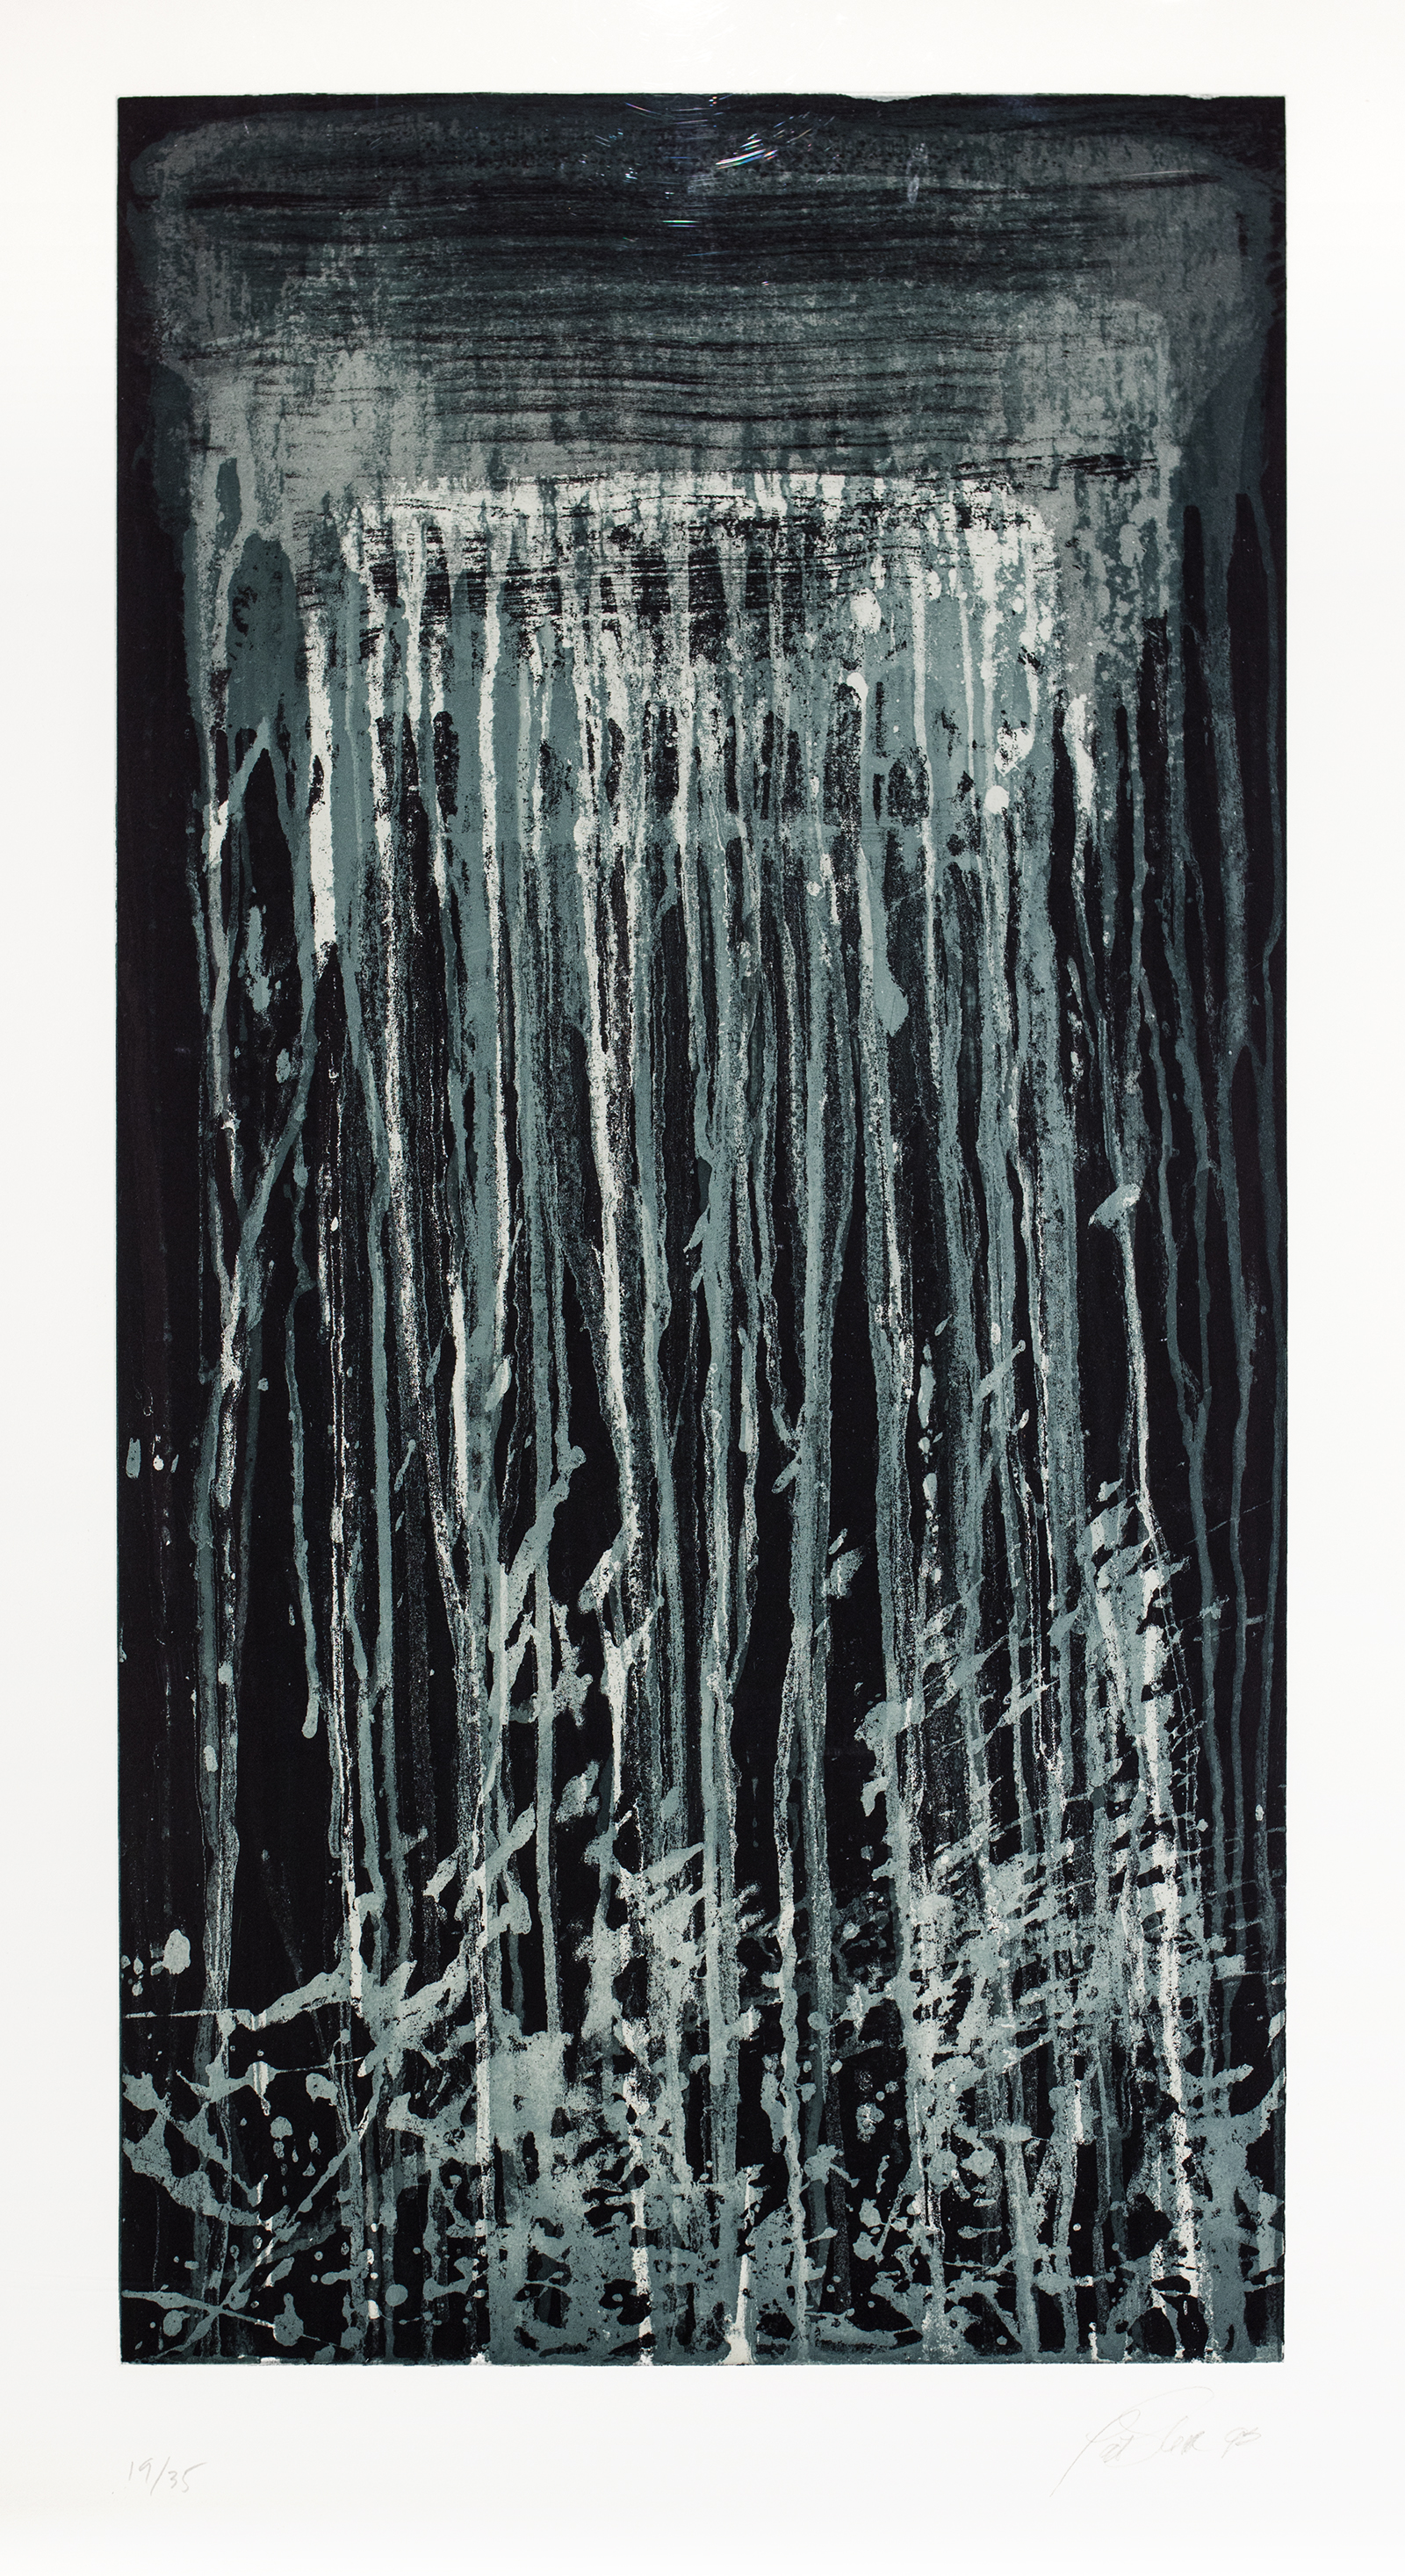 Pat Steir, Blue and White Waterfall, 1993